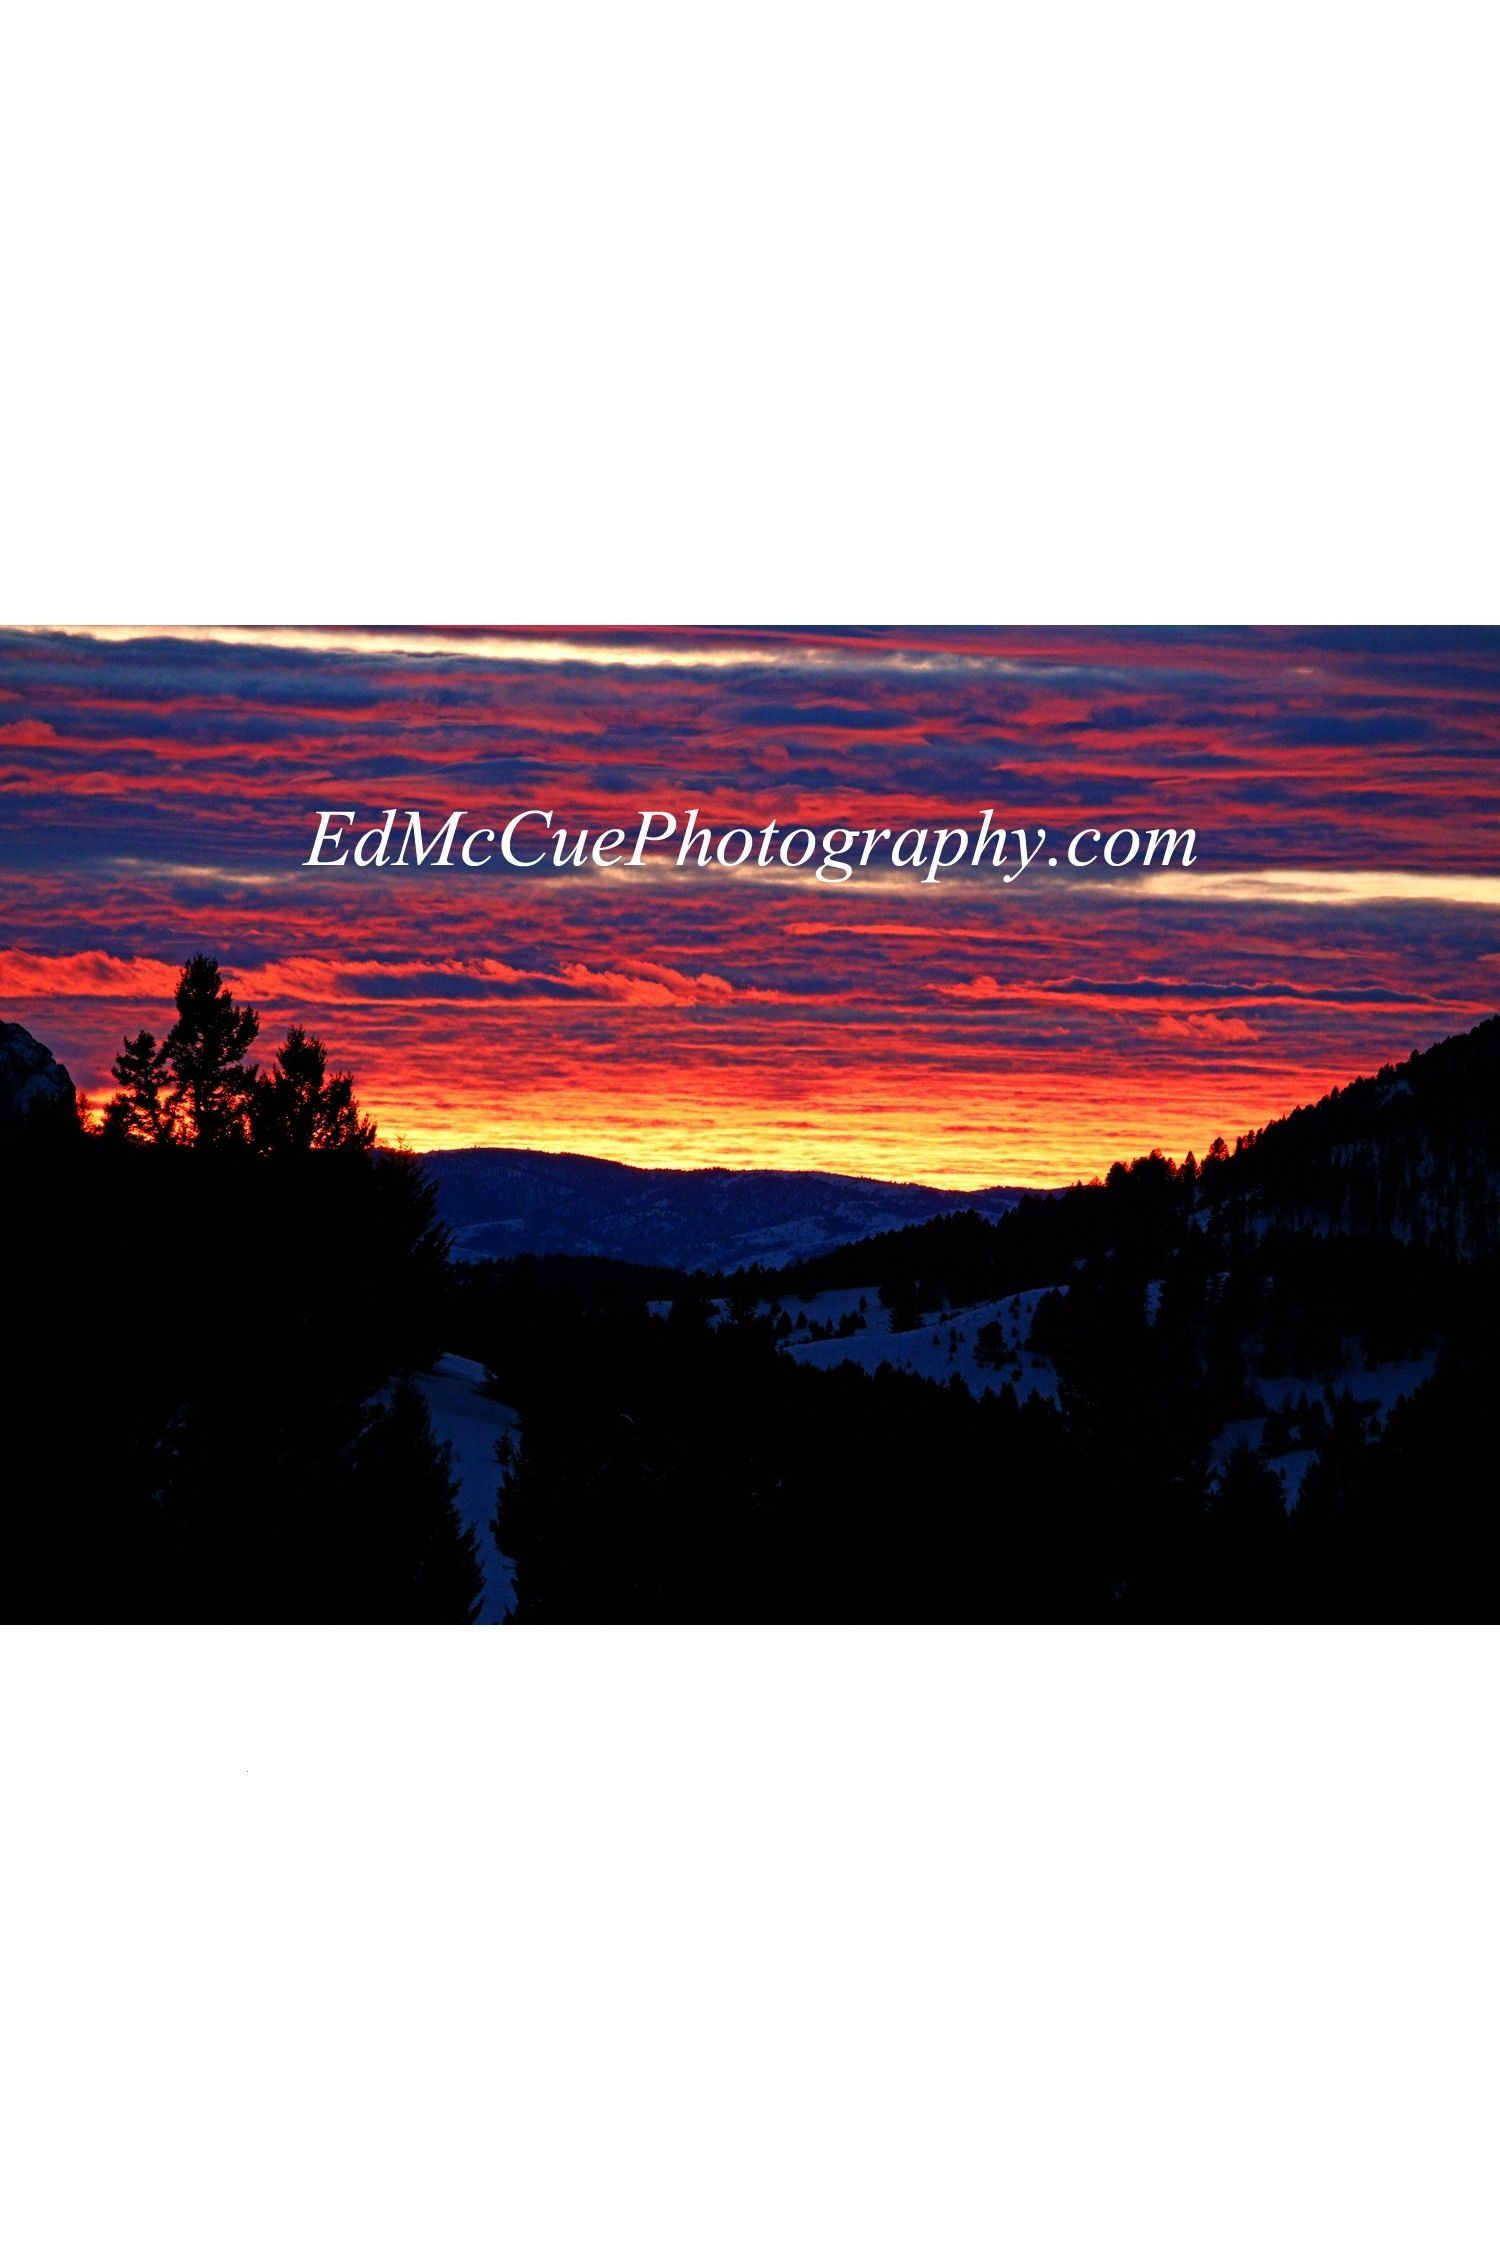 Bozeman Pass Montana Have you ever marveled at the beautiful red, pinks and orange colors of a sunr